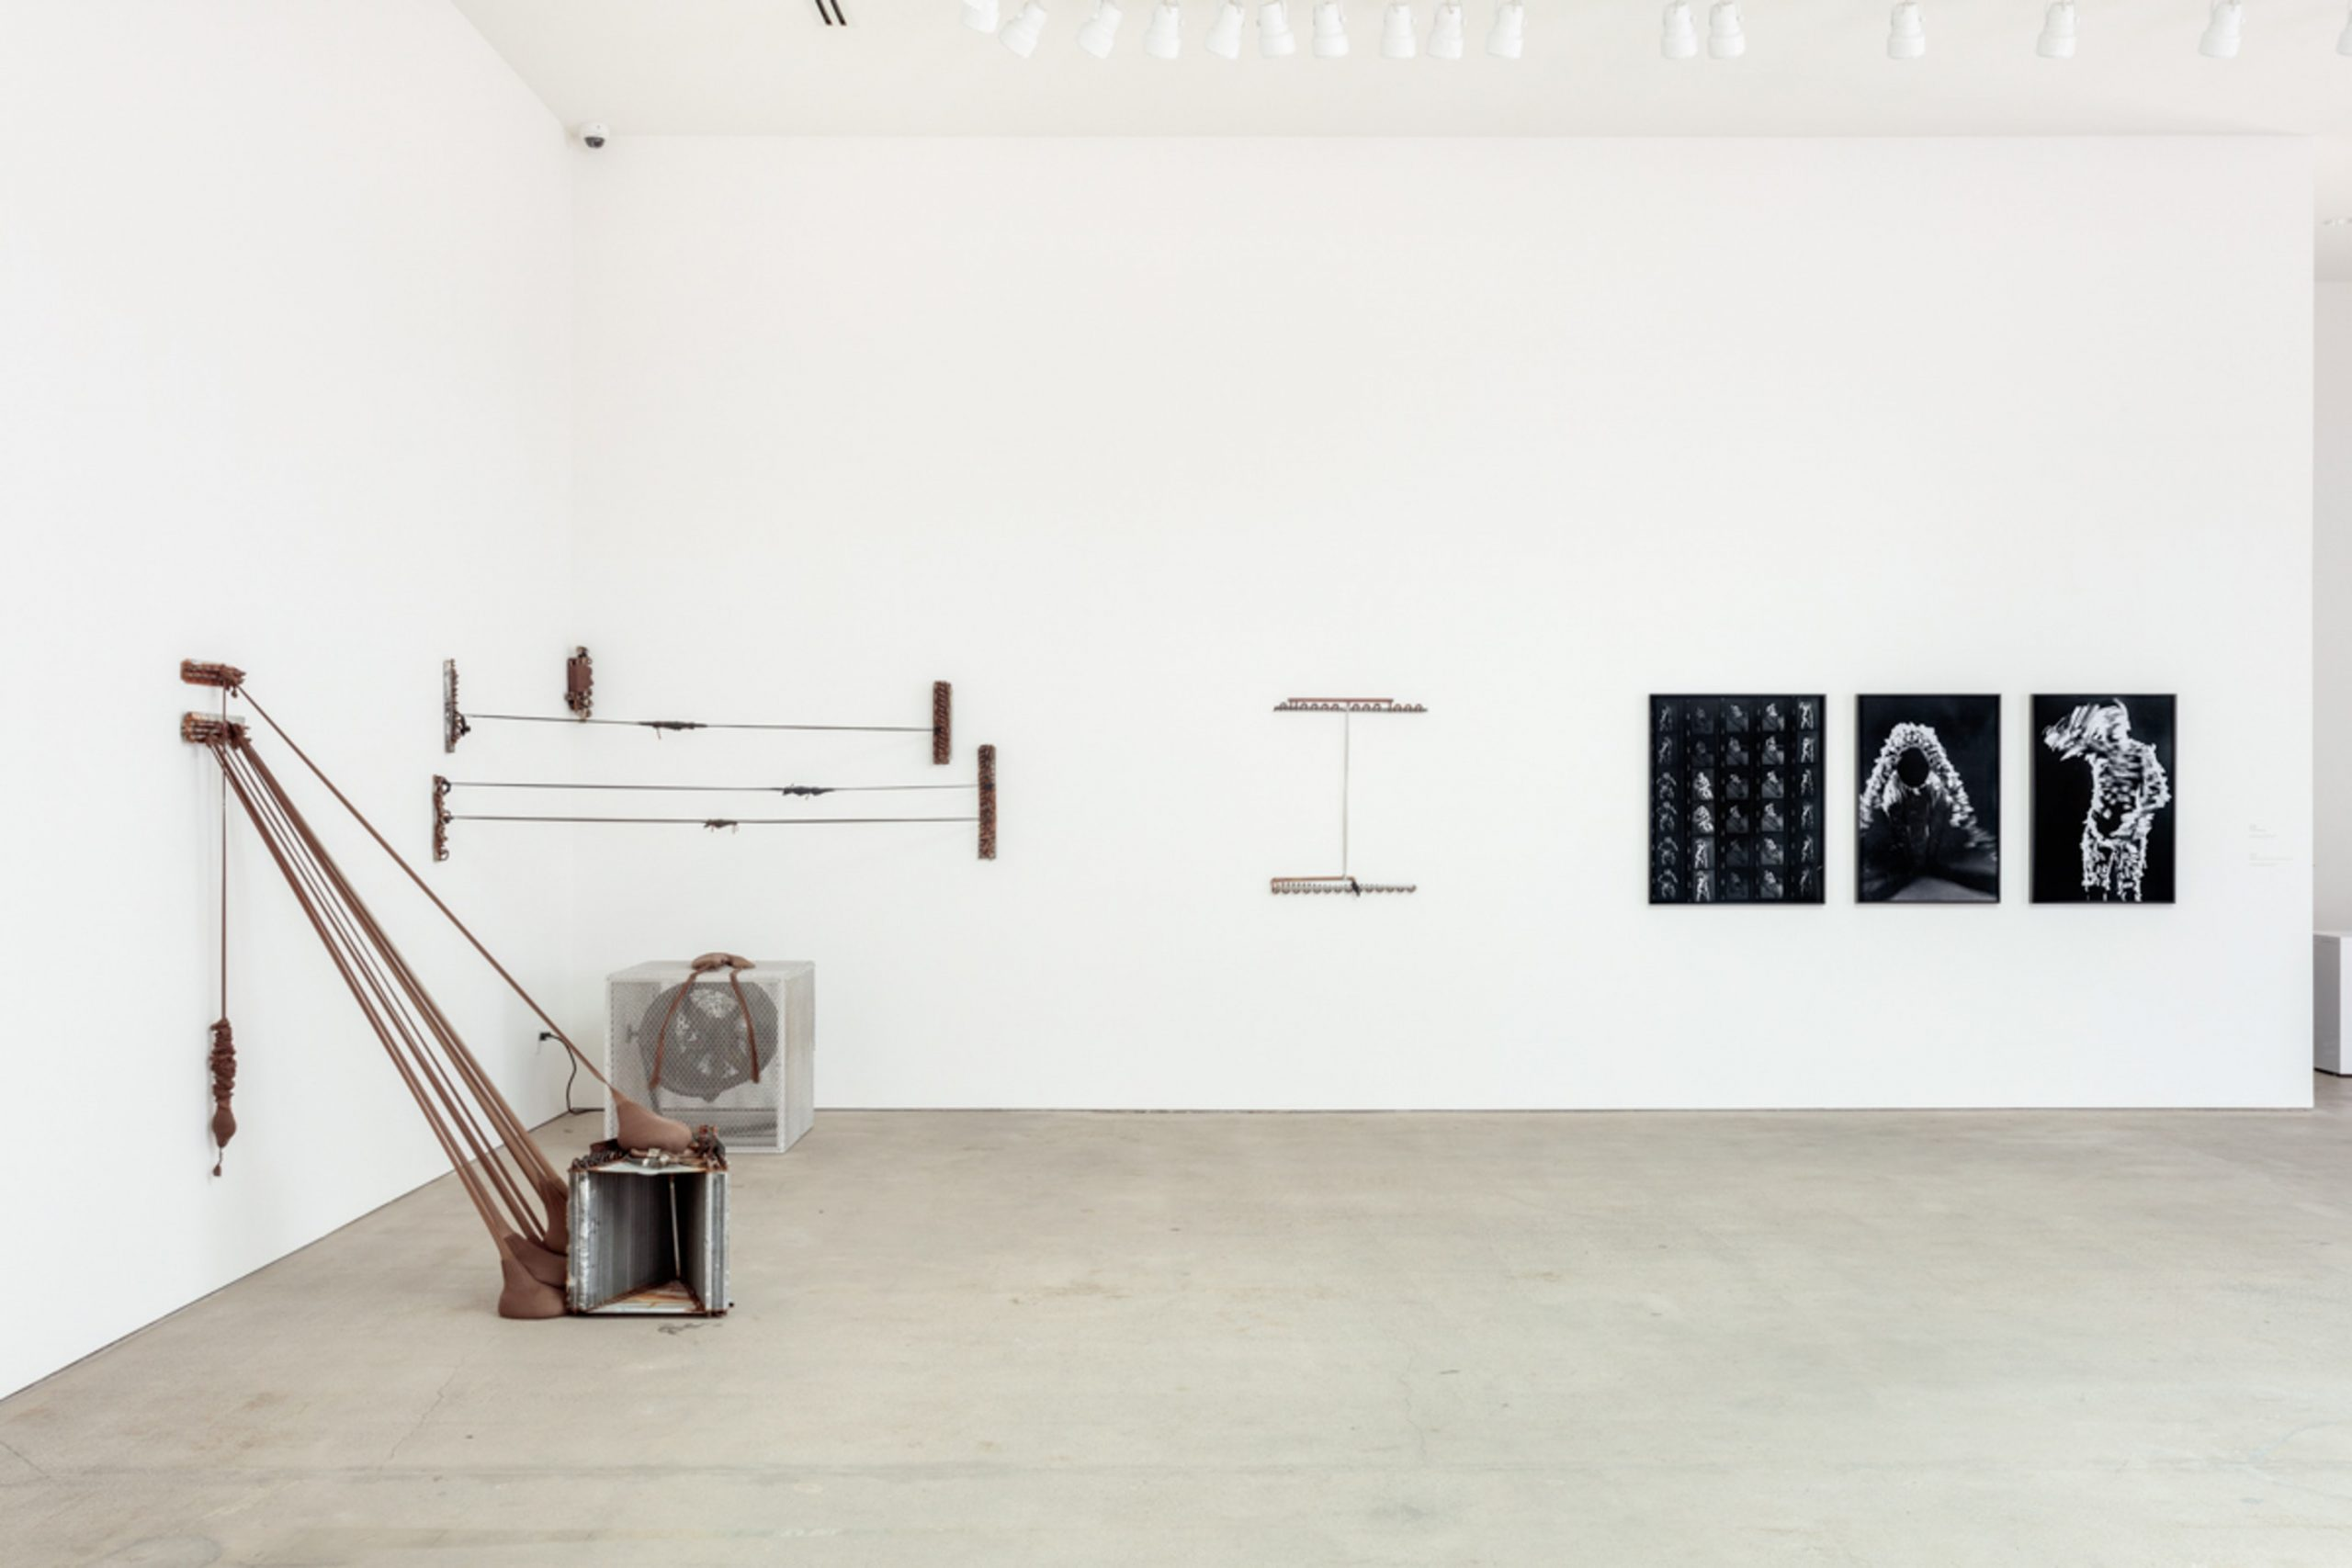 Installation view of Head Back and High: Senga Nengudi, Performance Objects (1976-2017) at Art + Practice. Leimert Park, Los Angeles. 23 June - 25 August 2018. Photo by Joshua White.